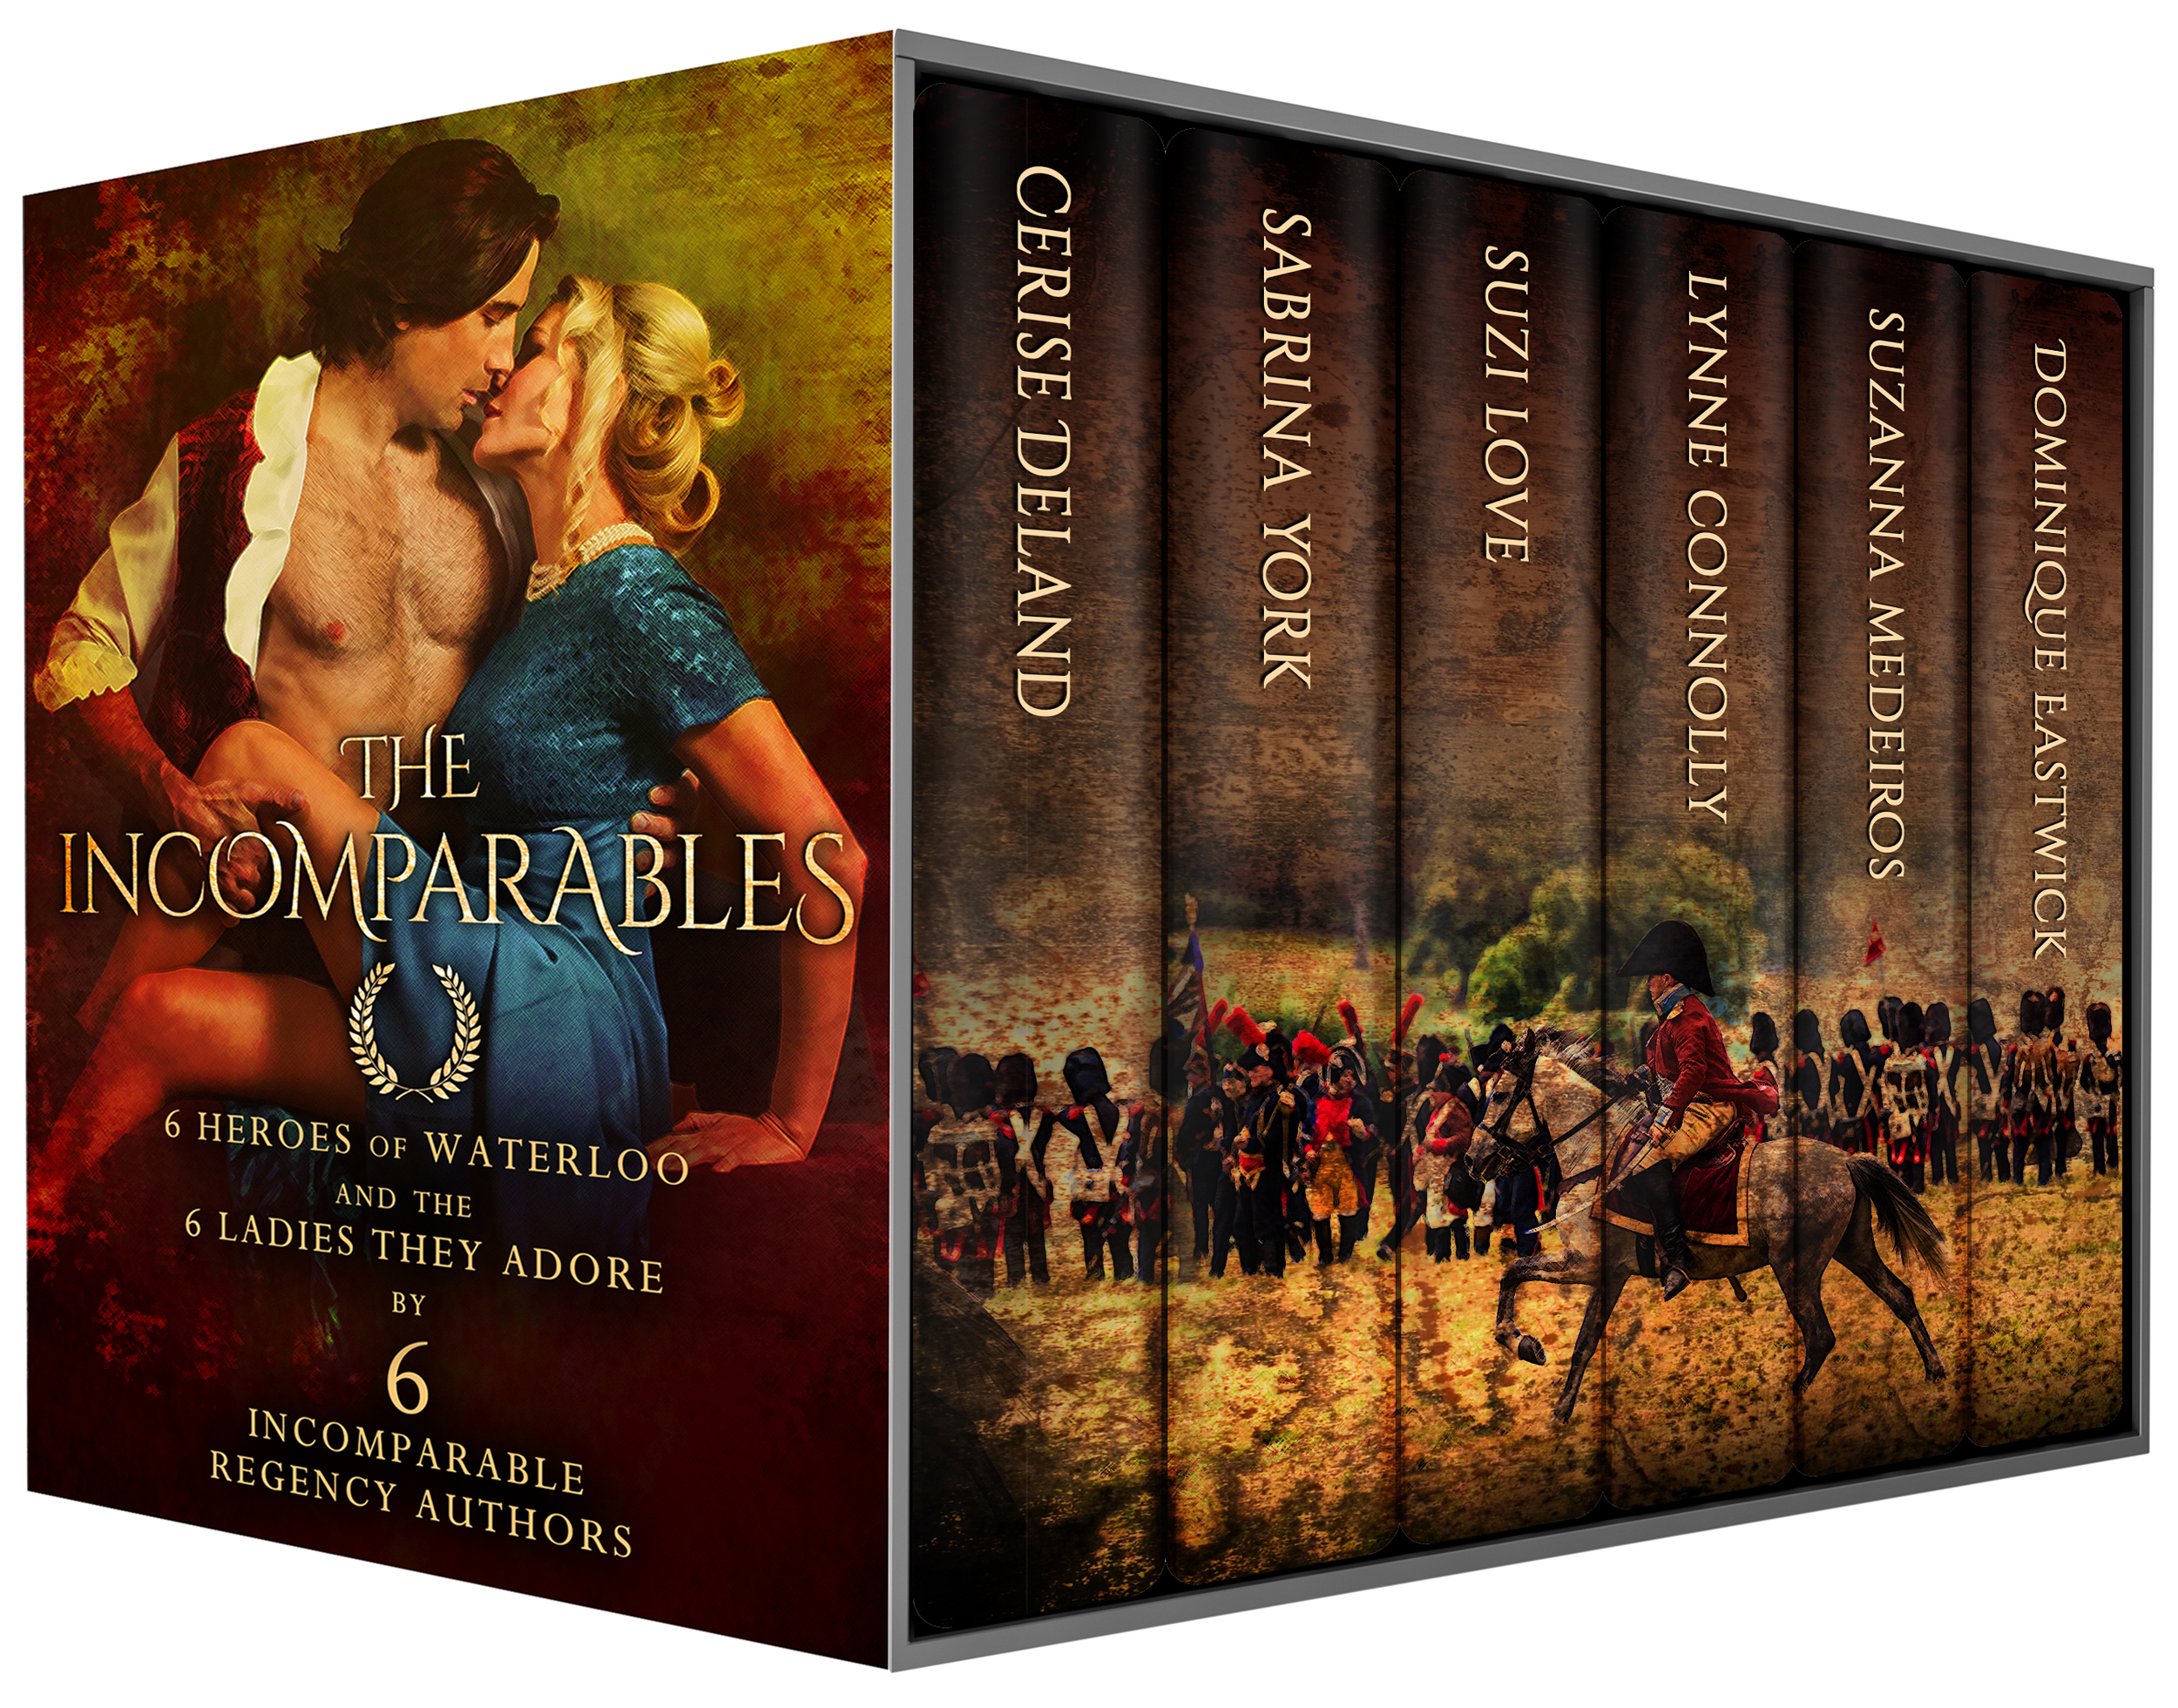 Cerise DeLand's unforgettable hero in THE INCOMPARABLES, an excerpt, out now!